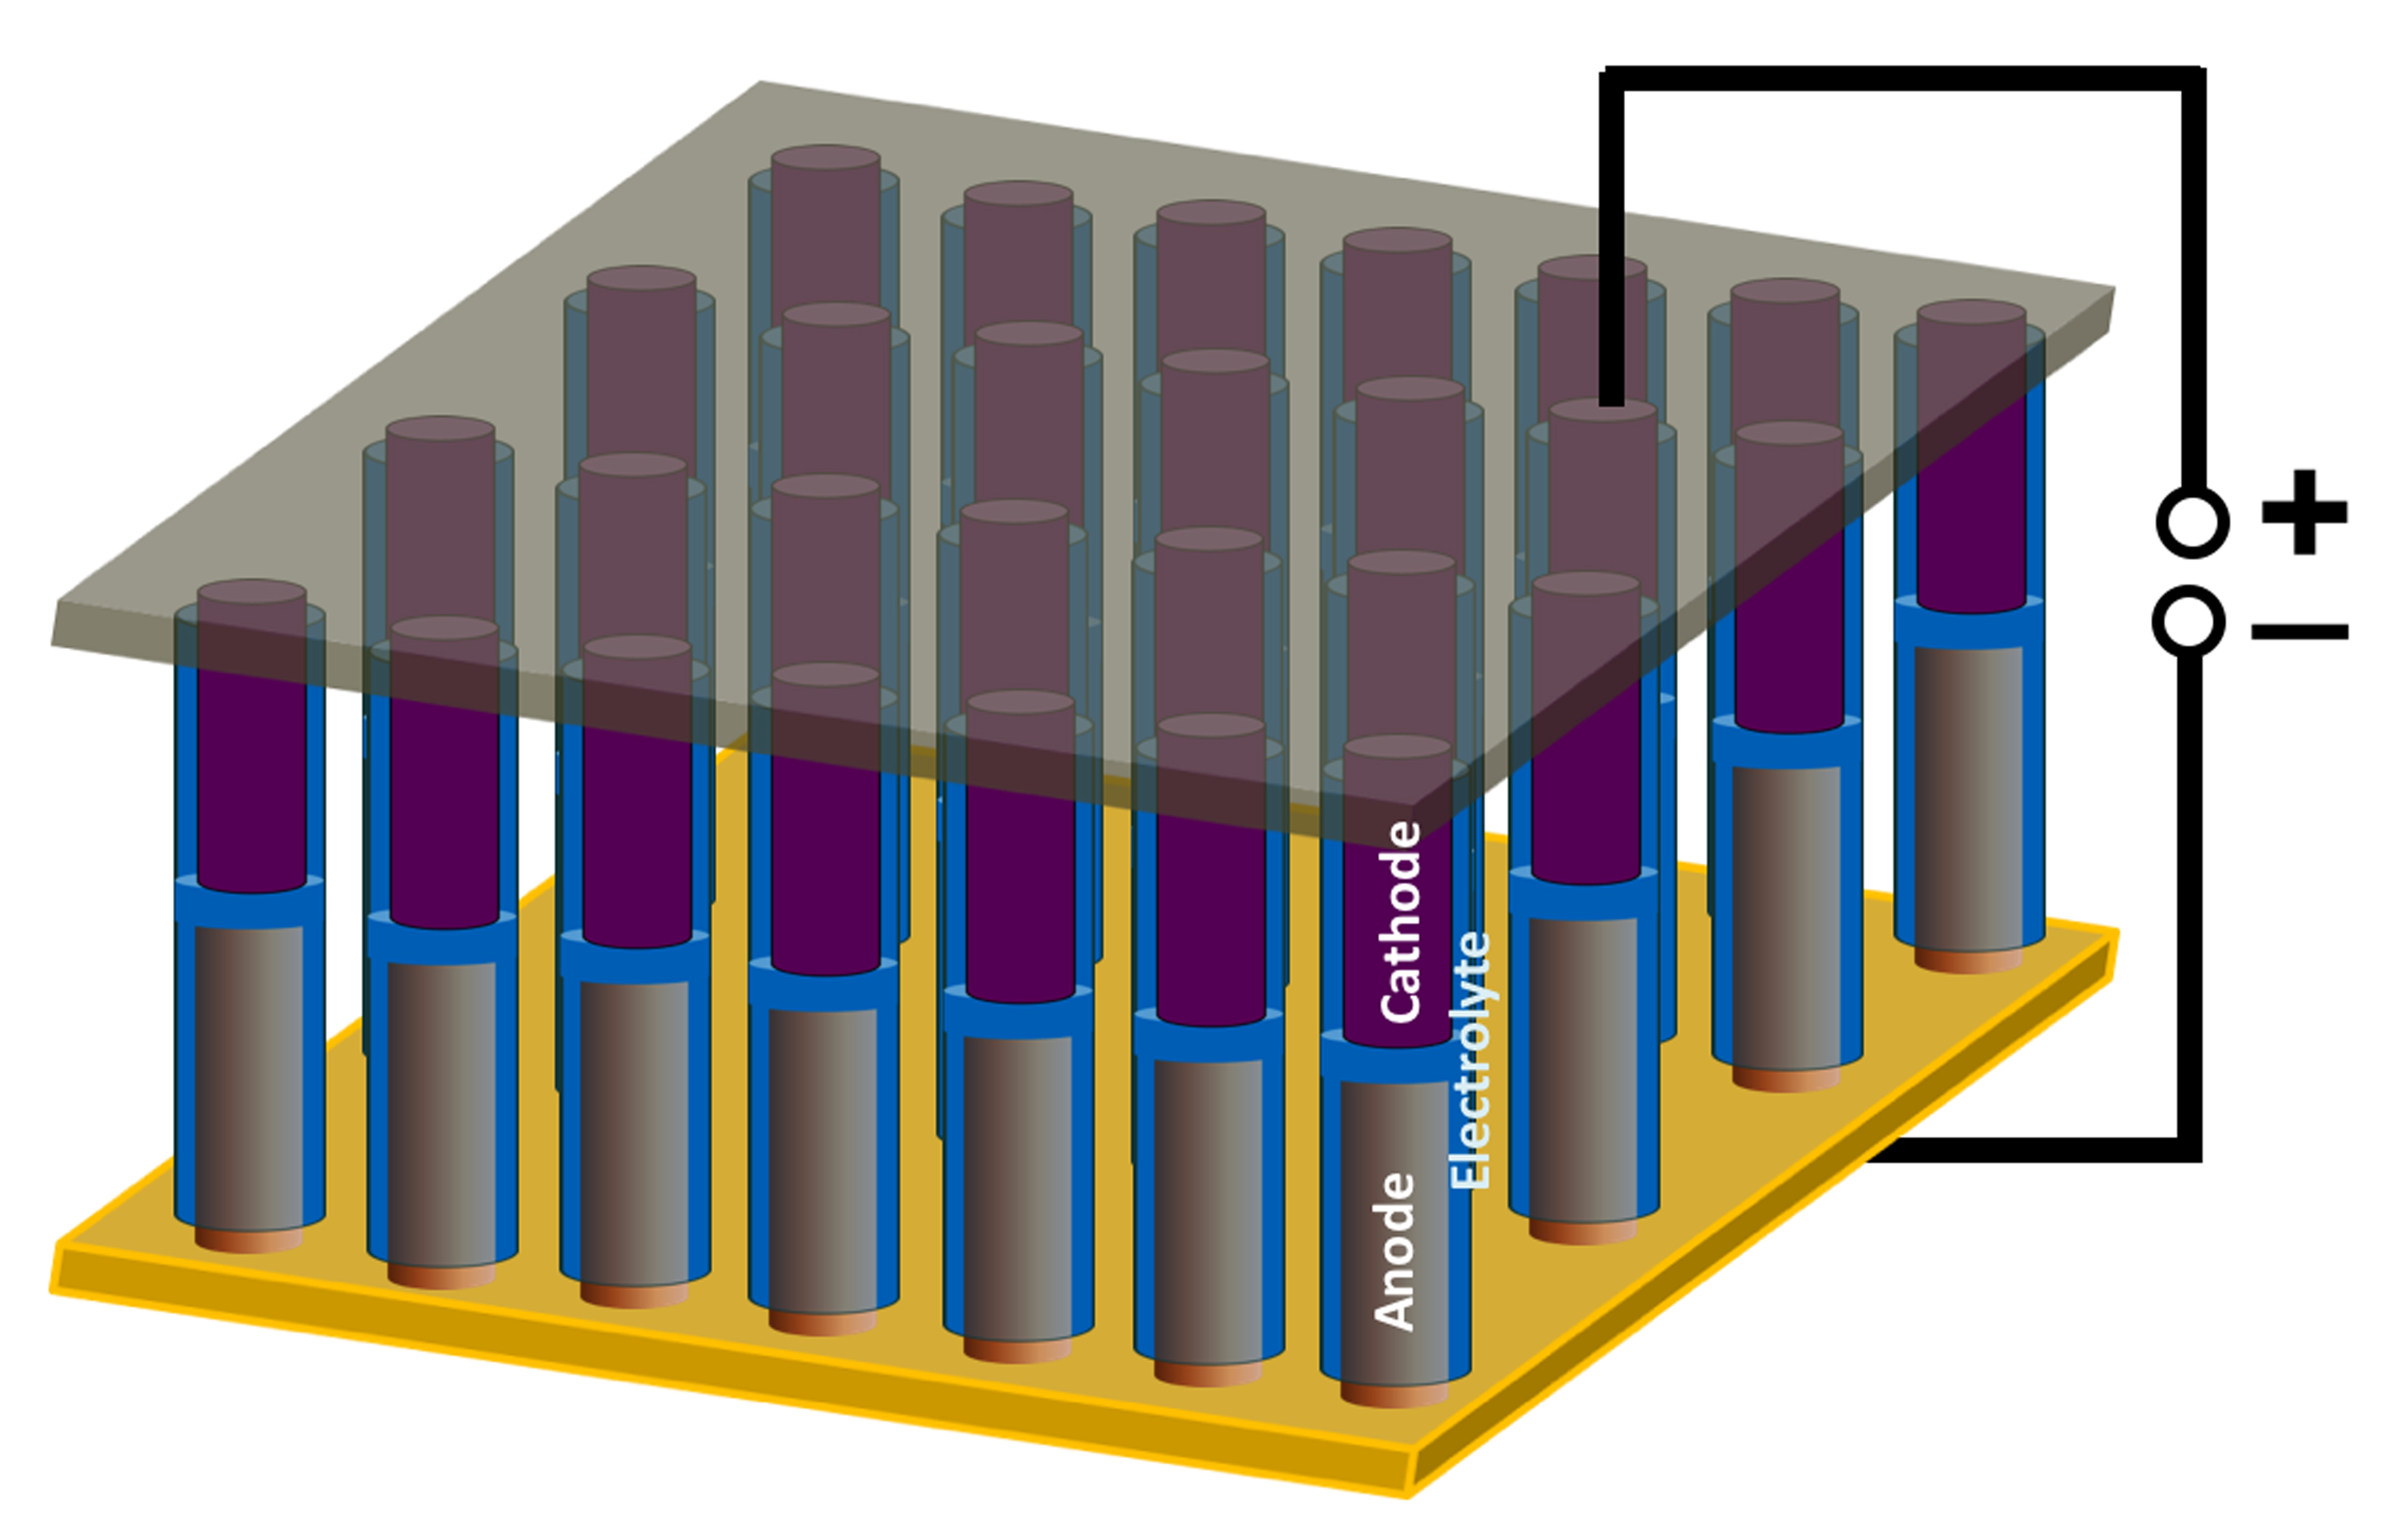 energy storage device fabricated on a nanowire array